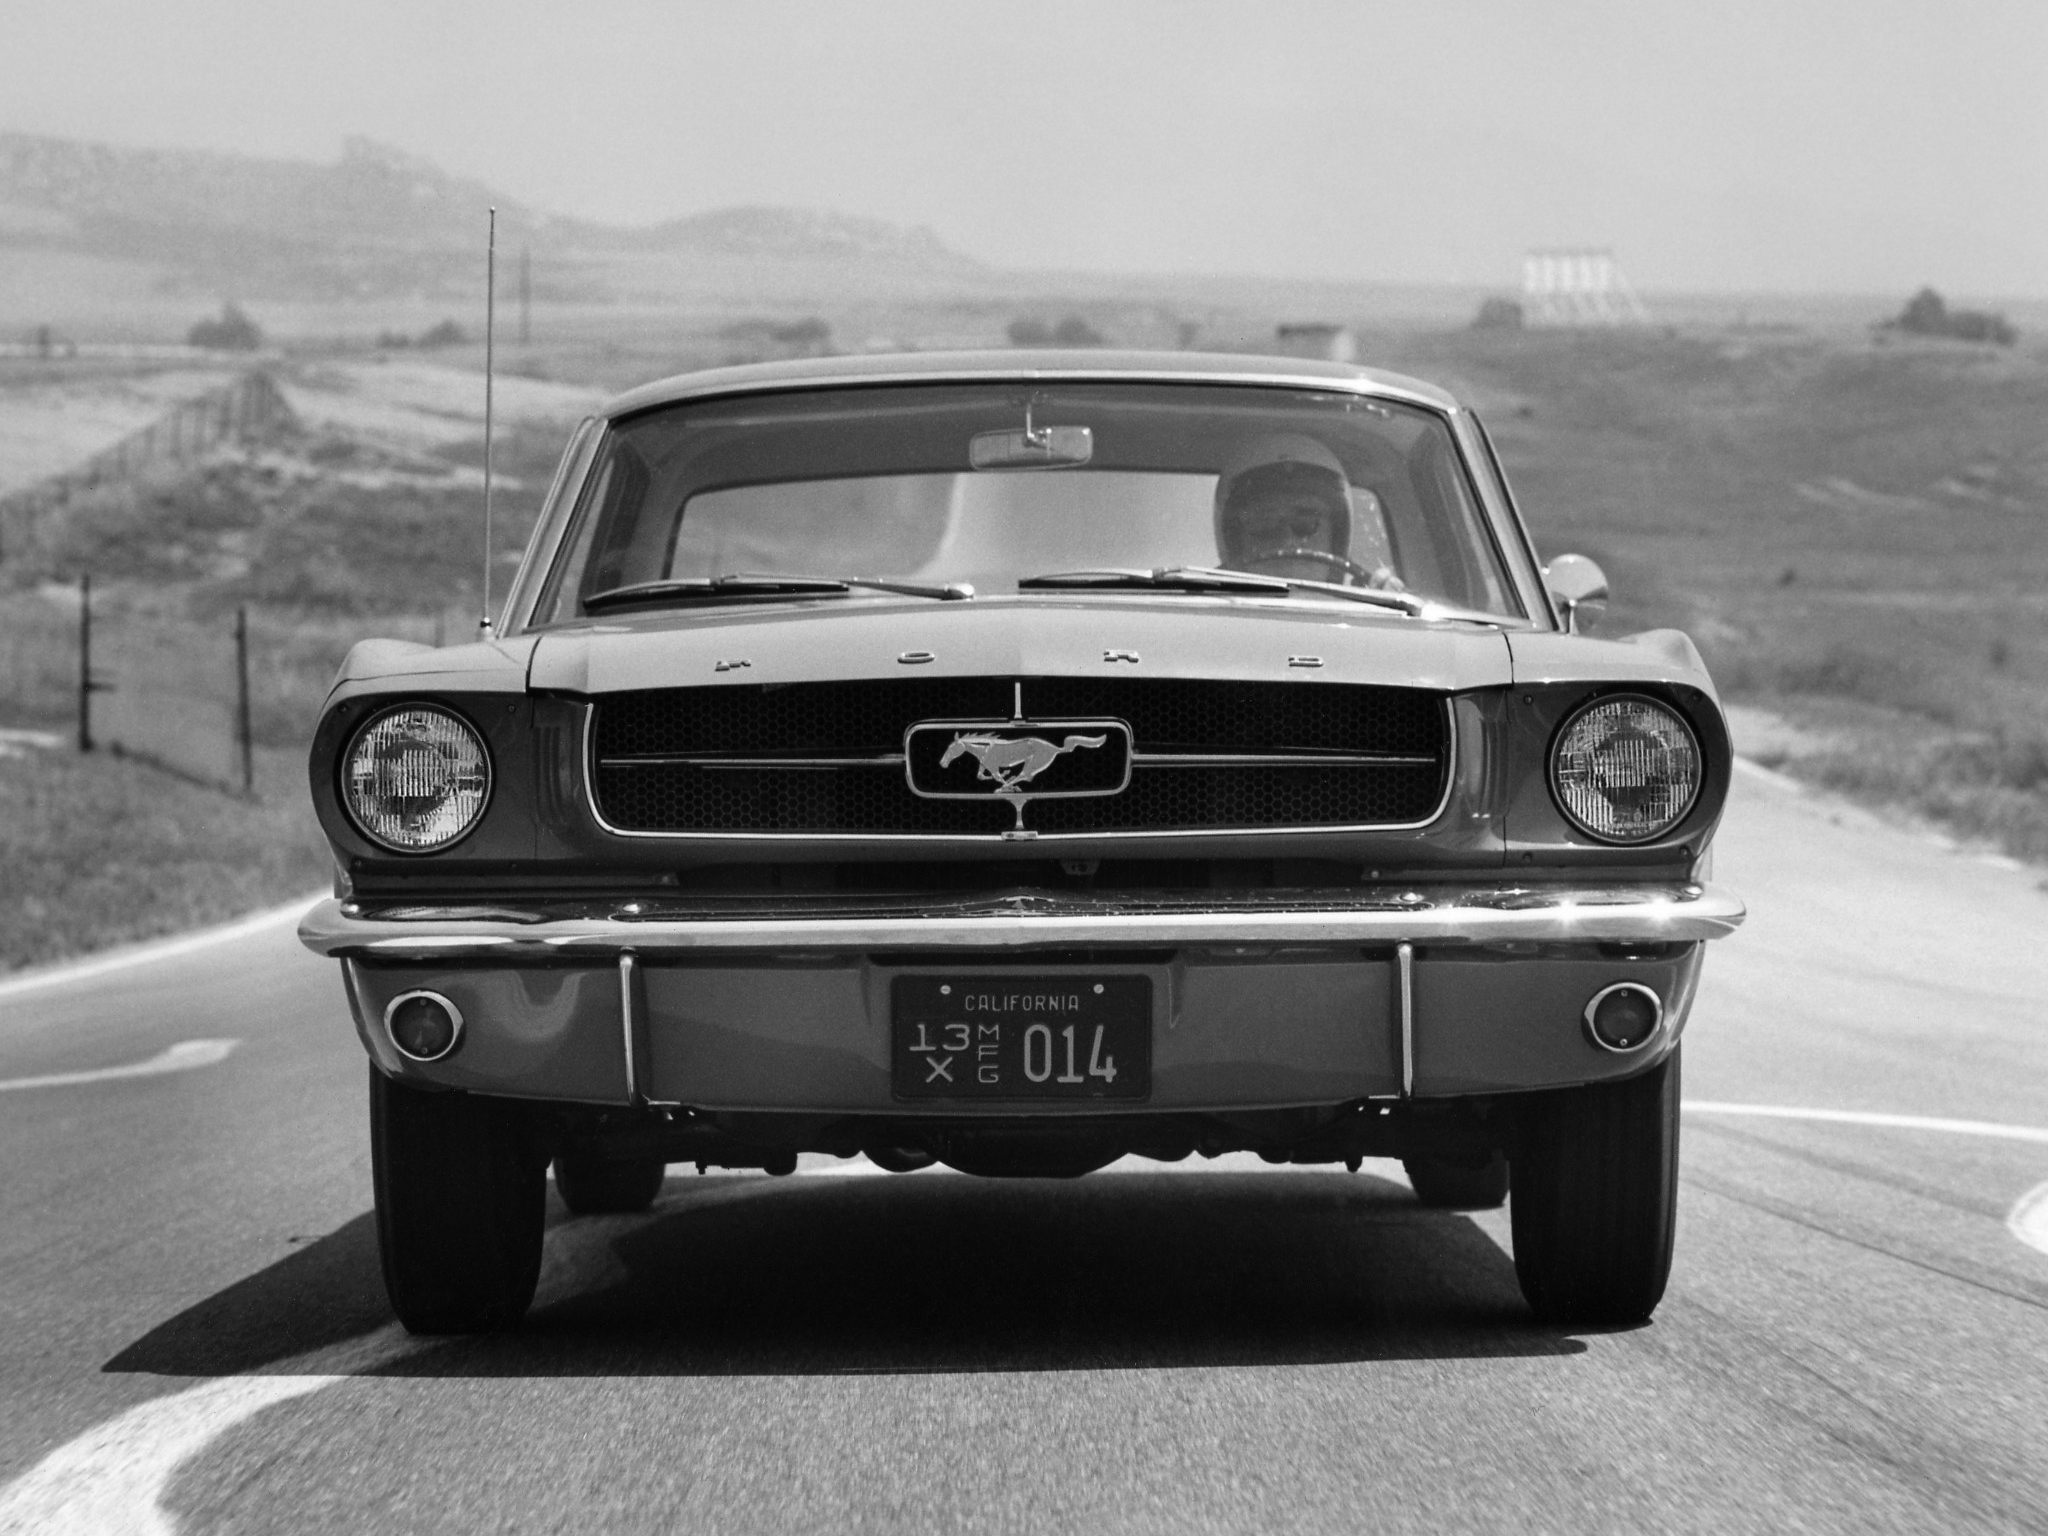 Black car wallpaper 1280x960 75779 - Ford mustang vintage ...